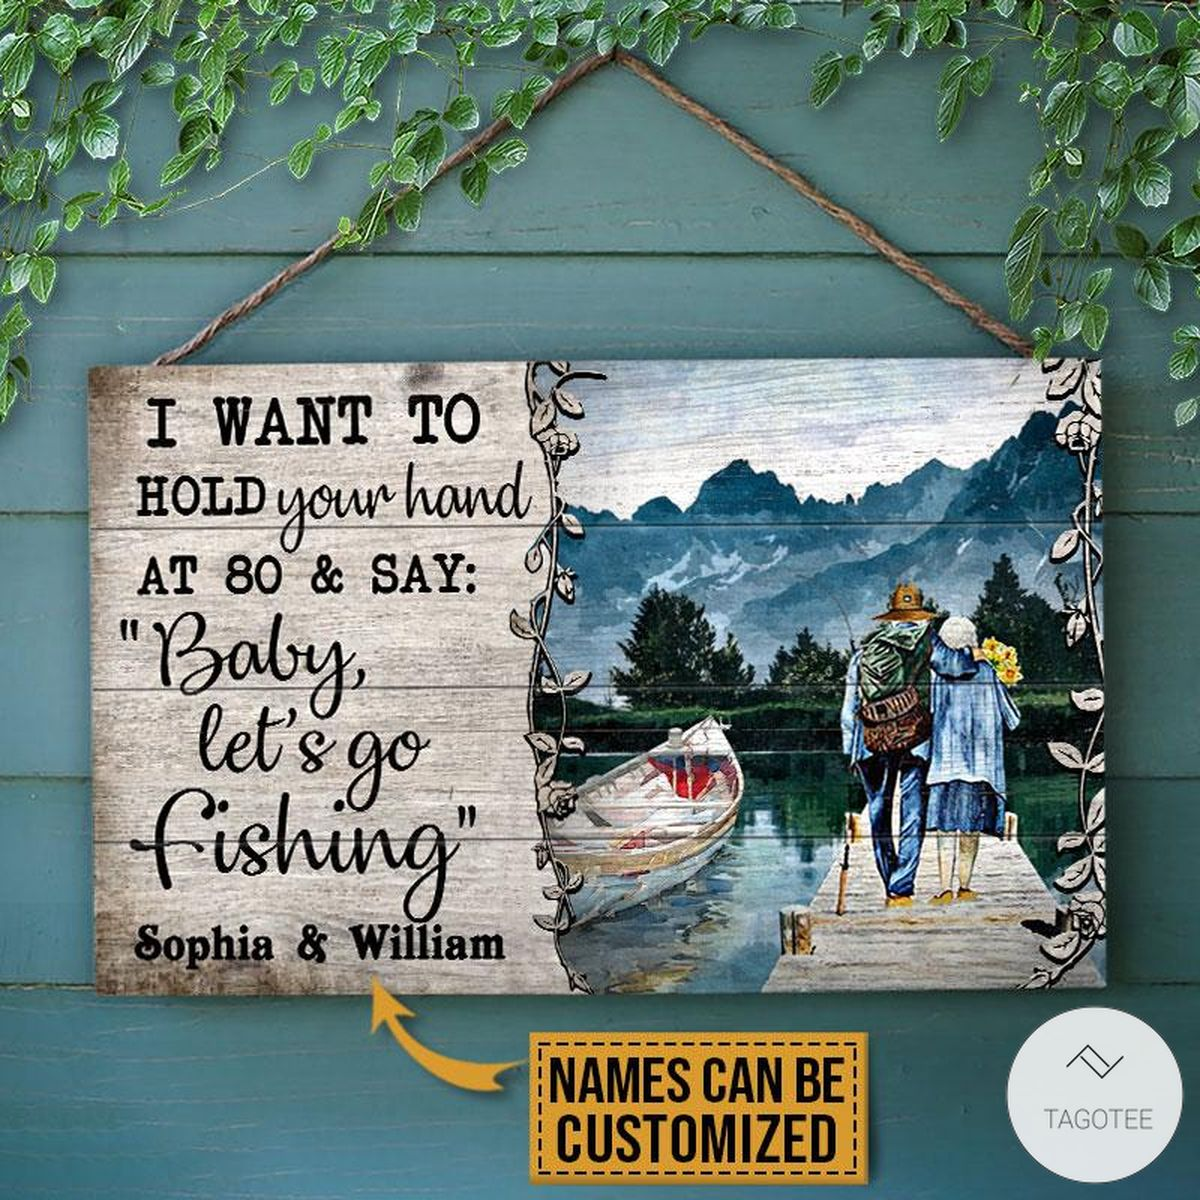 Personalized Fishing I Want To Hold Your Hand At 80 And Say Rectangle Wood Sign